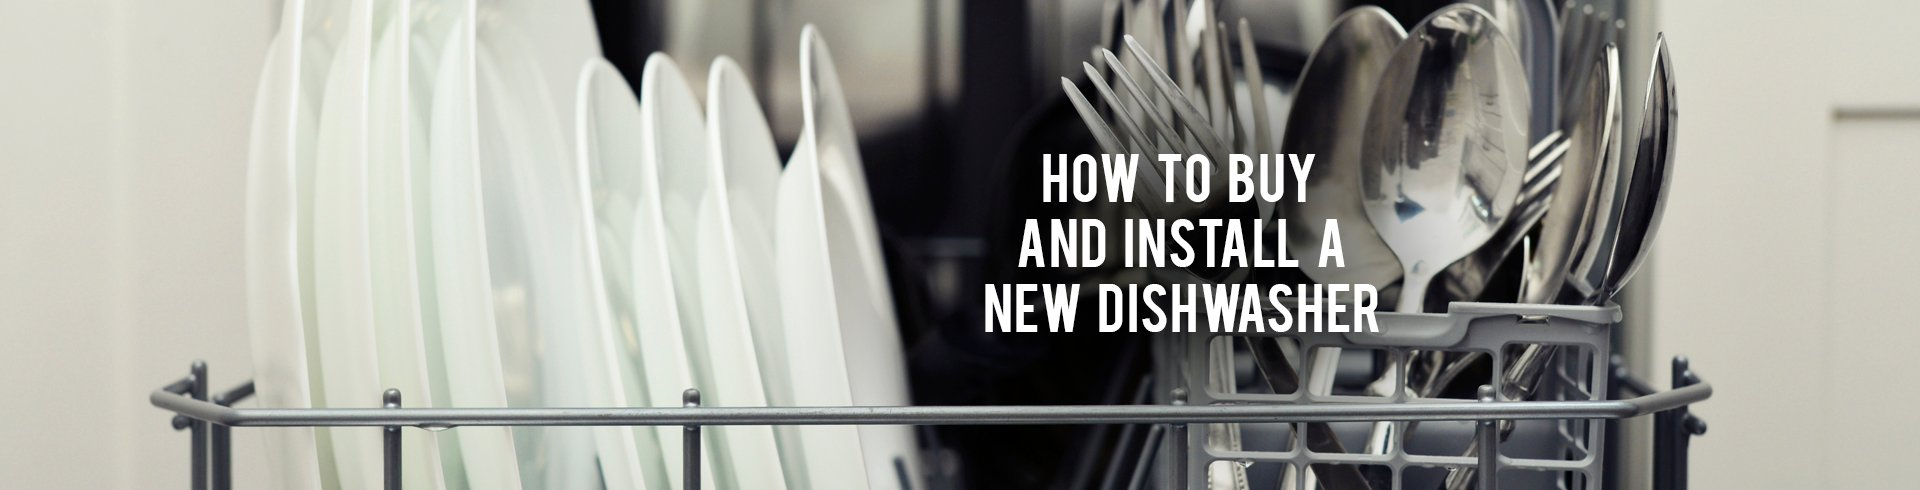 How To Buy Dishwasher How To Buy And Install A New Dishwasher Rc Willey Blog